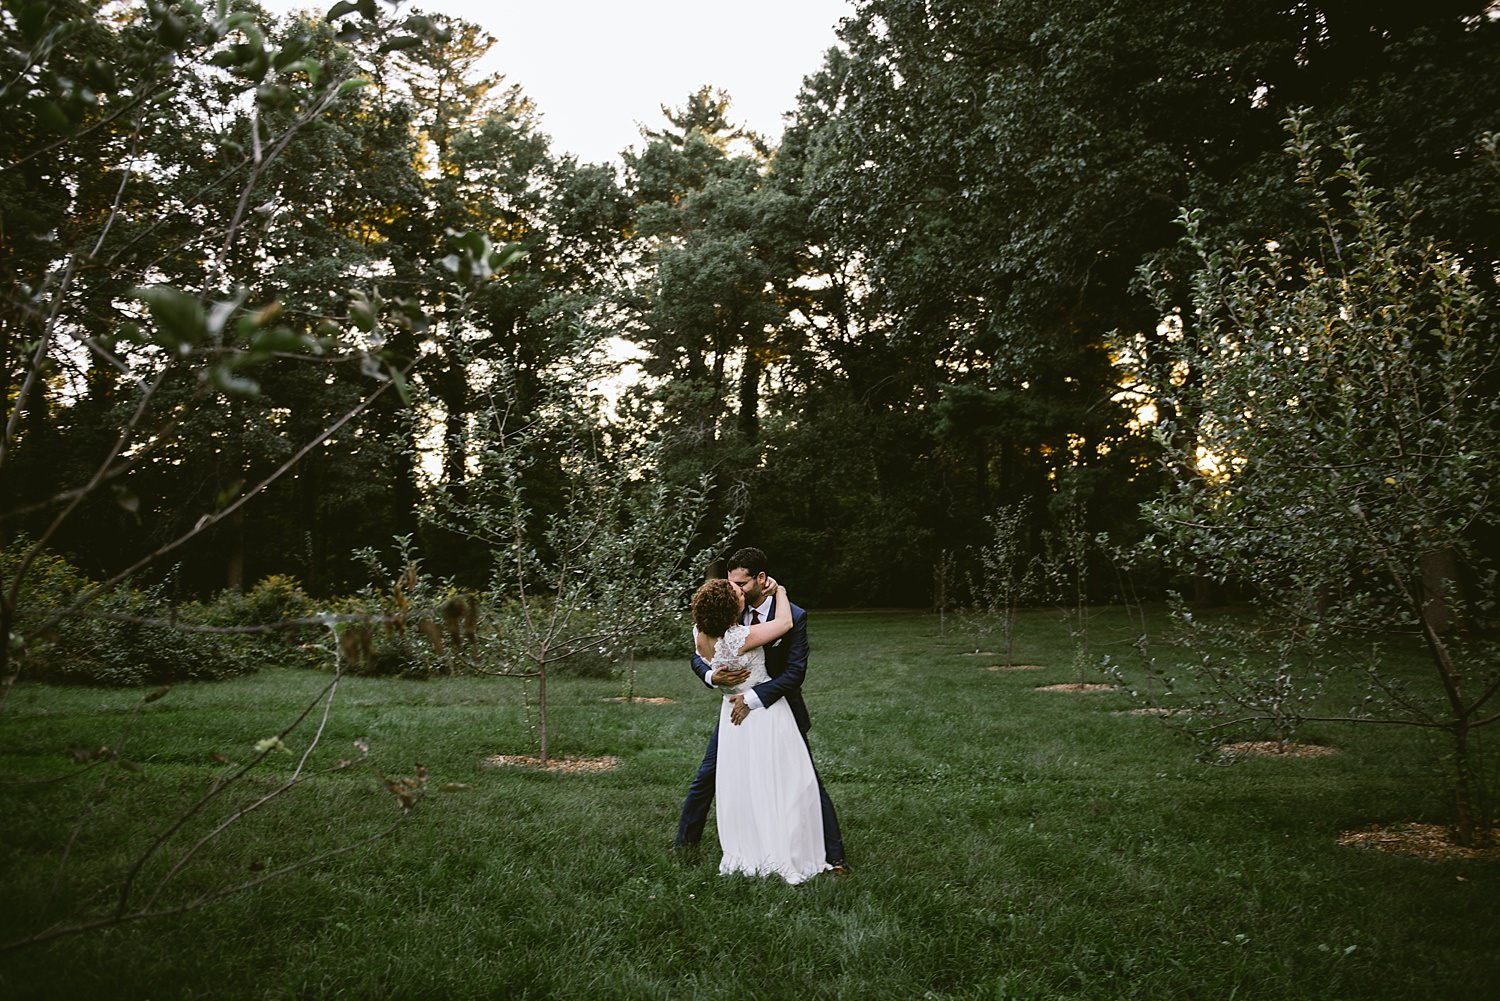 Groom kissing bride in field